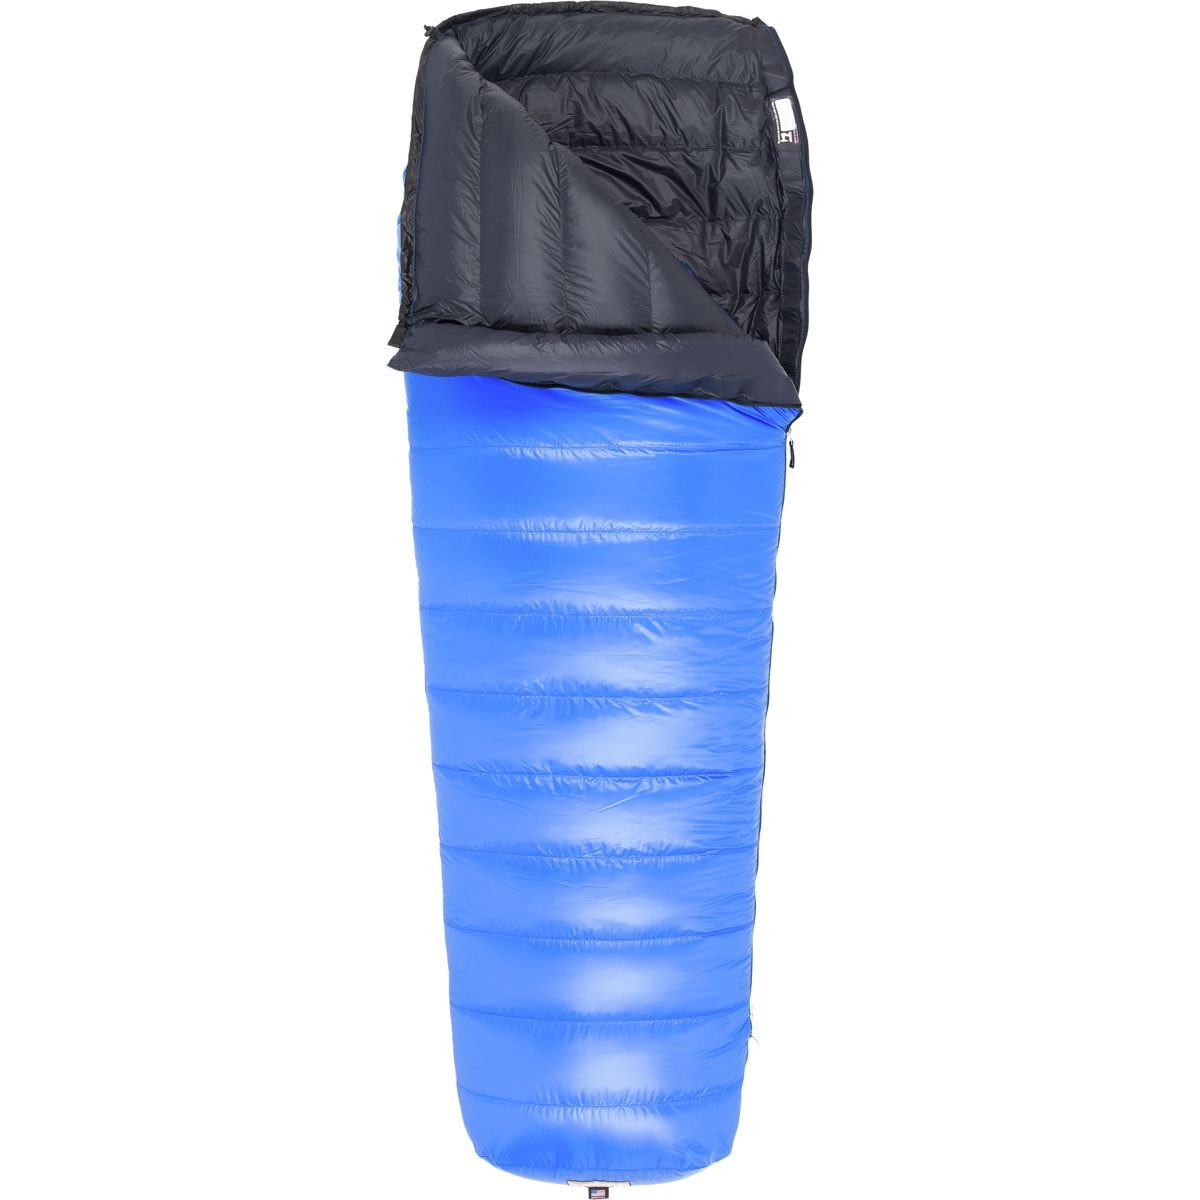 An image related to Western Mountaineering Alder MF 30 Degree Sleeping Bag